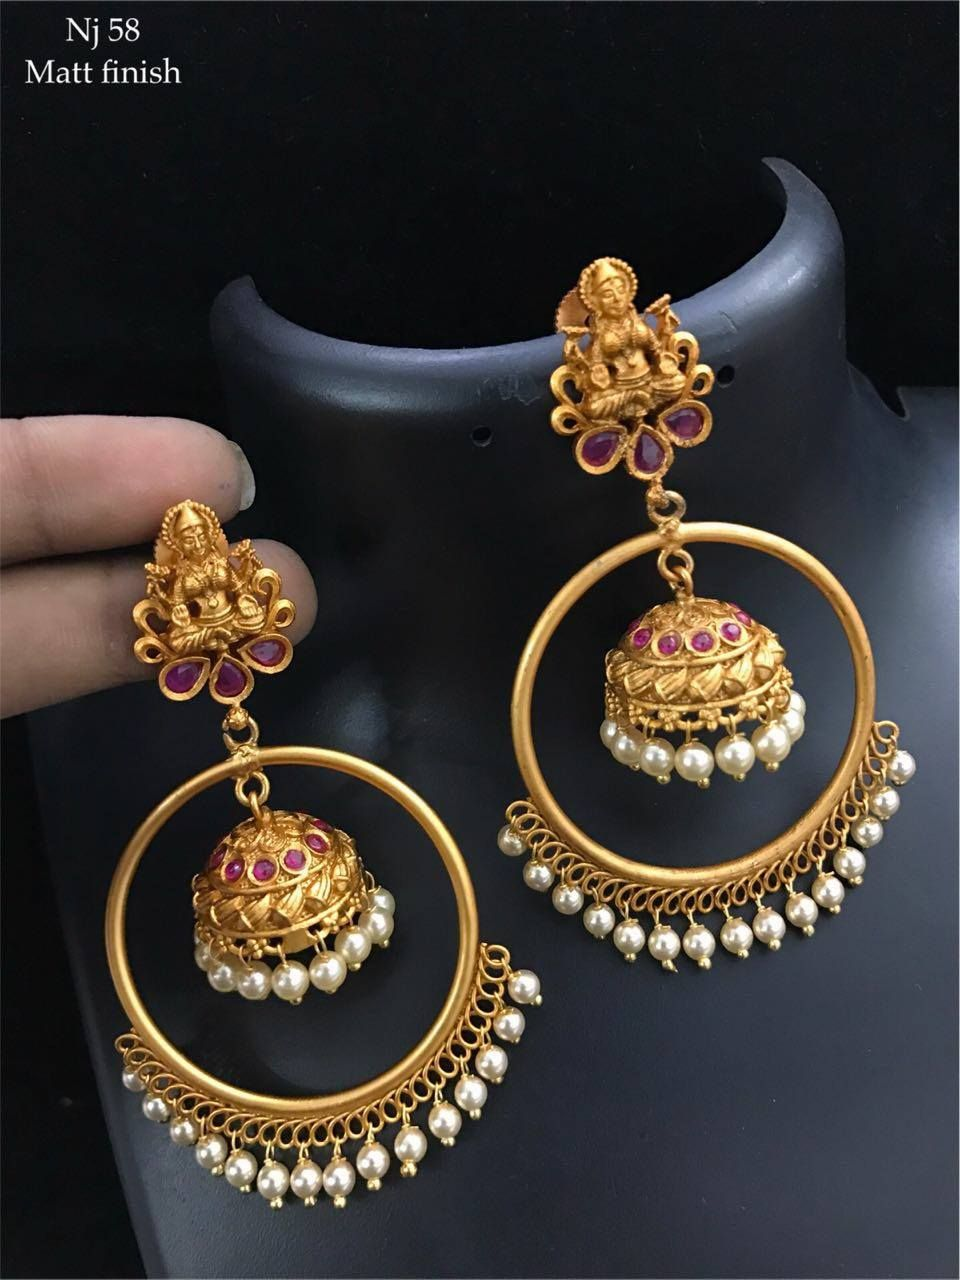 Beautiful Earrings With Lakshmi Devi Design Jumkhi Hangigns At The Center Of Rings 19 January 2018